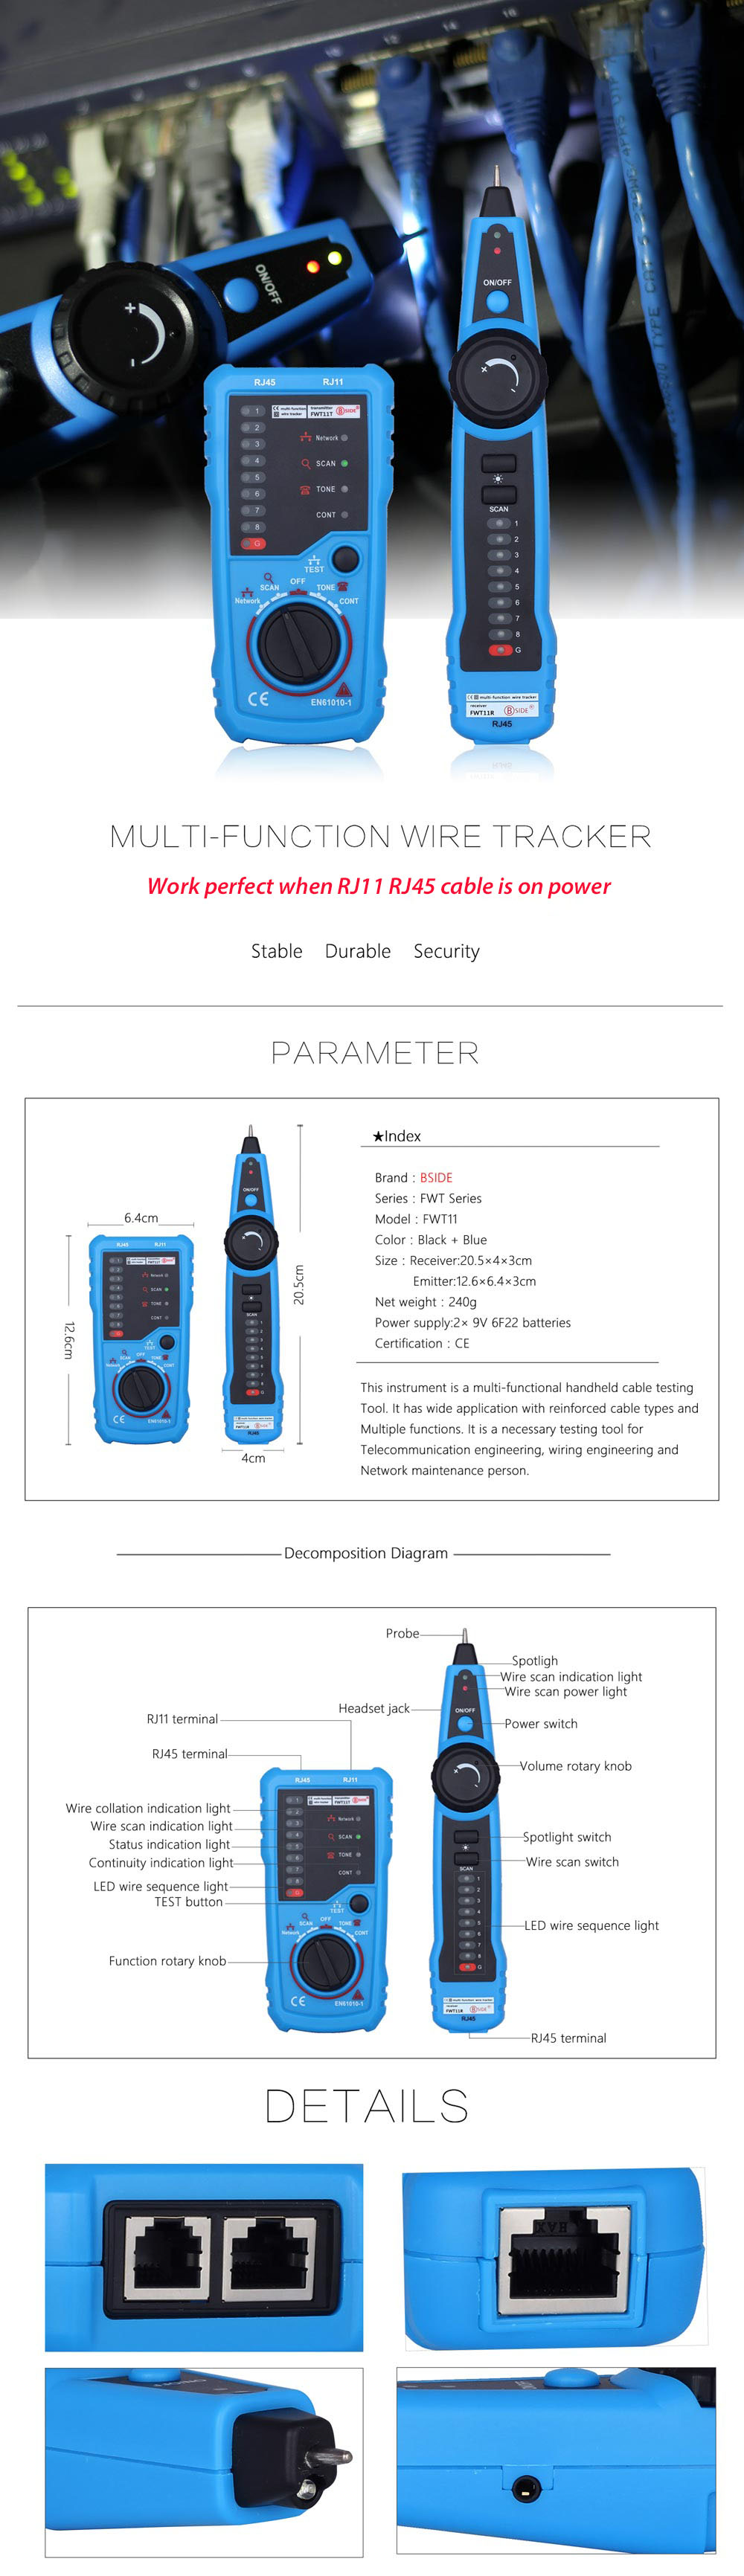 hight resolution of bside fwt11 handheld rj45 rj11 network telephone cable tester wire line tracker blue and black